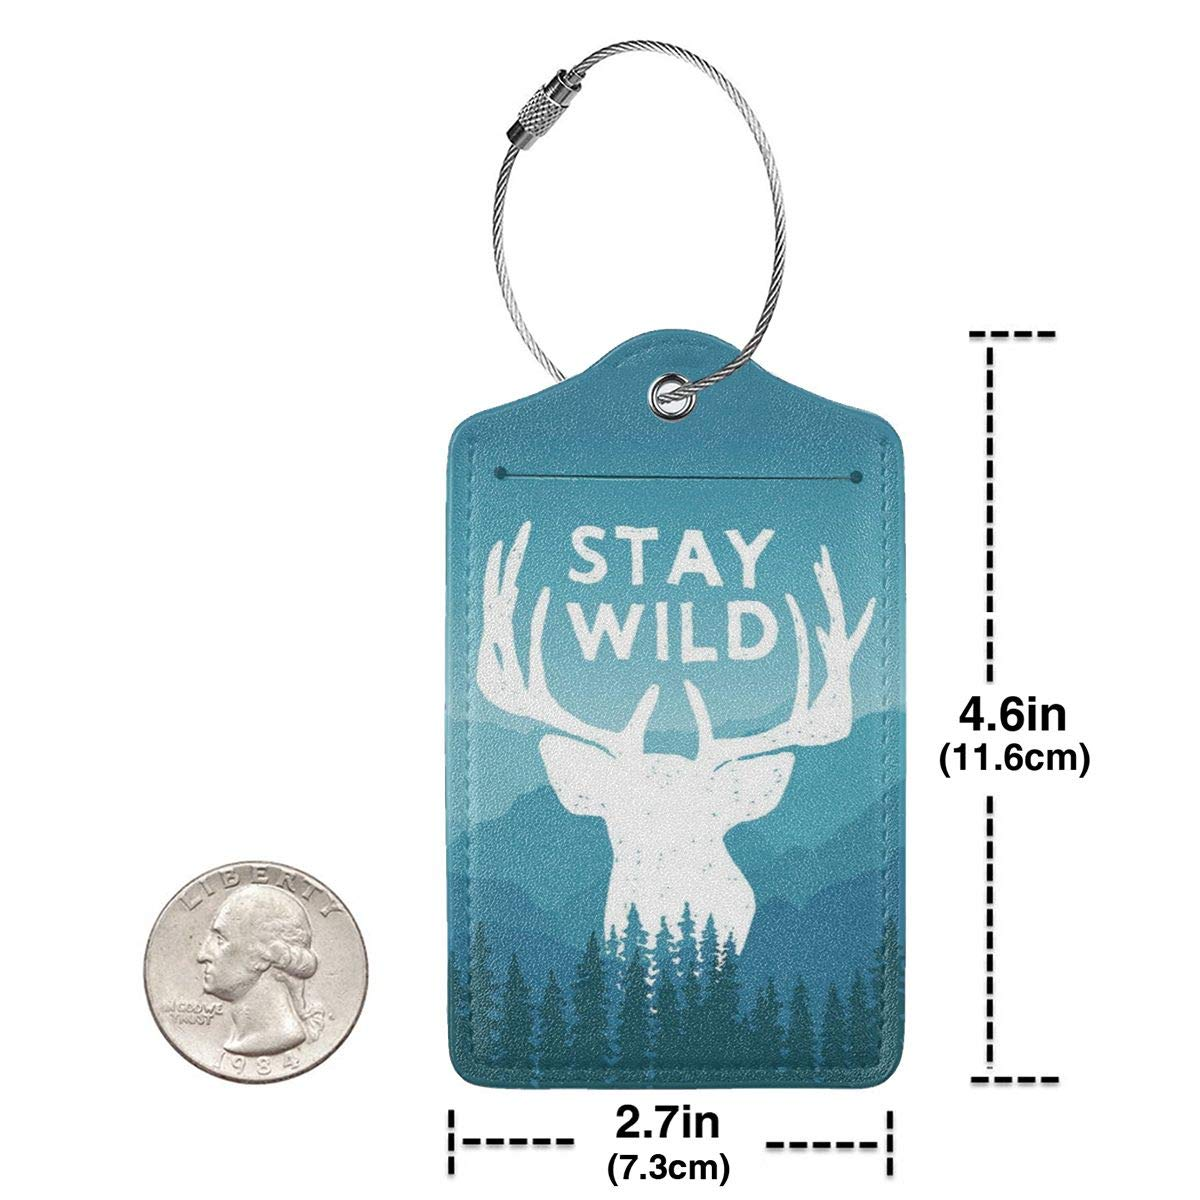 Leather Luggage Tag Stay Wild Adventure Wilderness Emblems Luggage Tags For Suitcase Travel Lover Gifts For Men Women 4 PCS